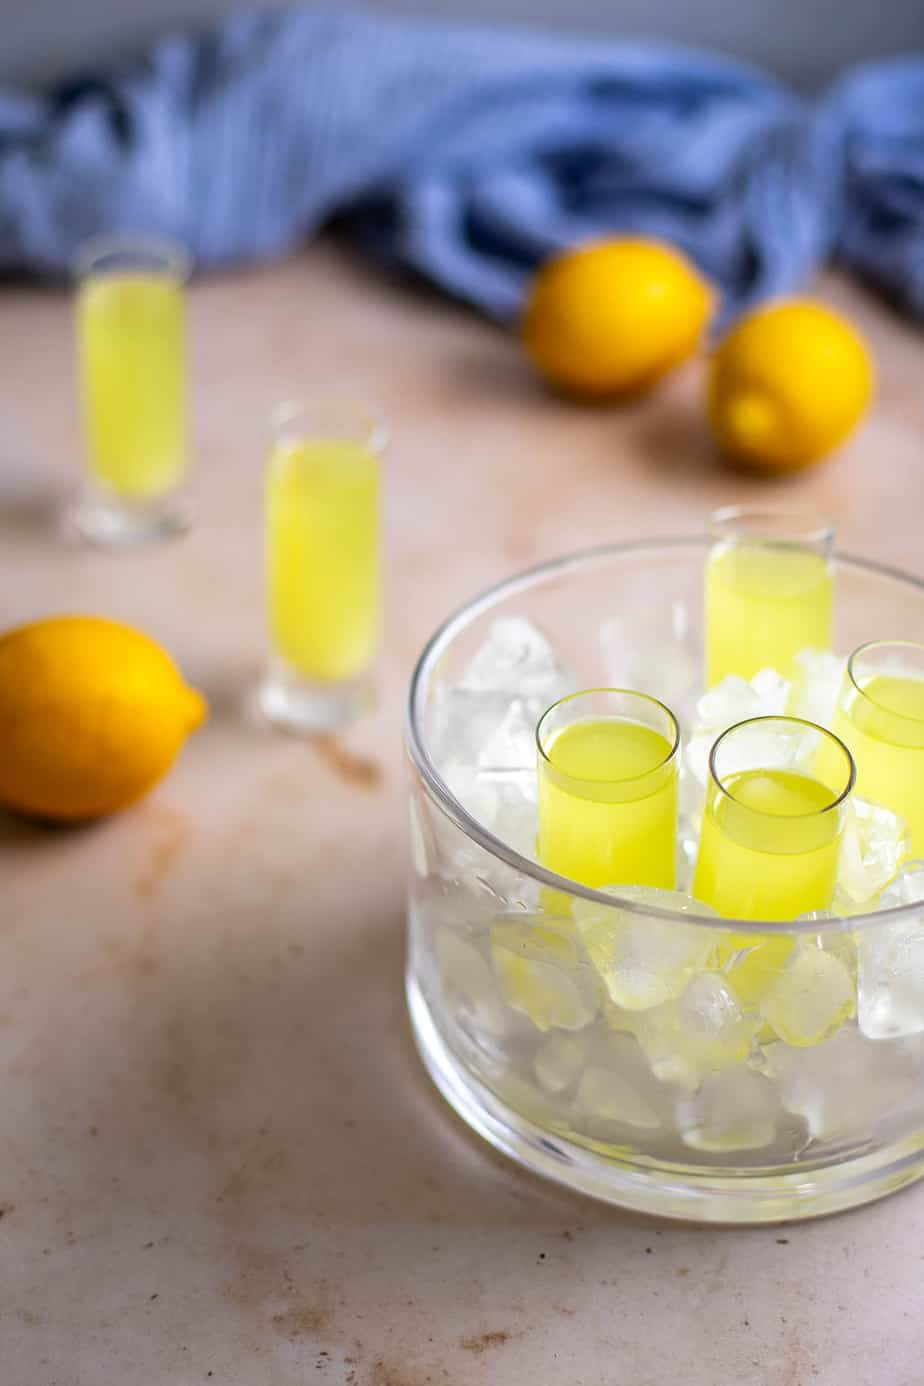 a glass dish is filled with ice and holds 4 tall shot glasses of limoncello; two shot glasses are in the background, along with lemons